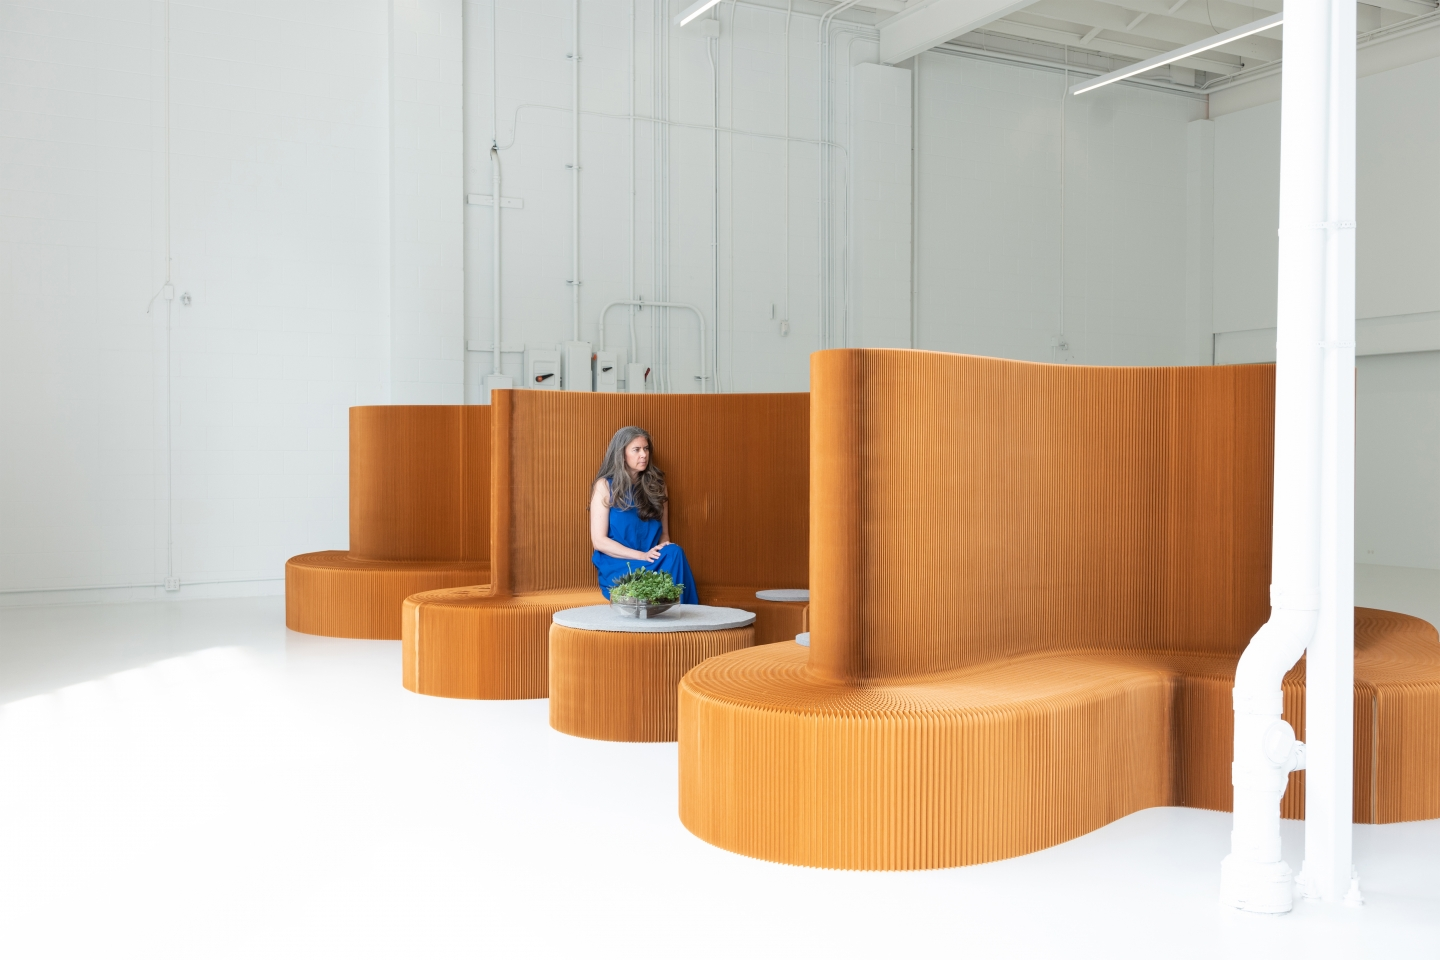 a woman sits in a meeting room made of benchwall, a foldable seat and room divider